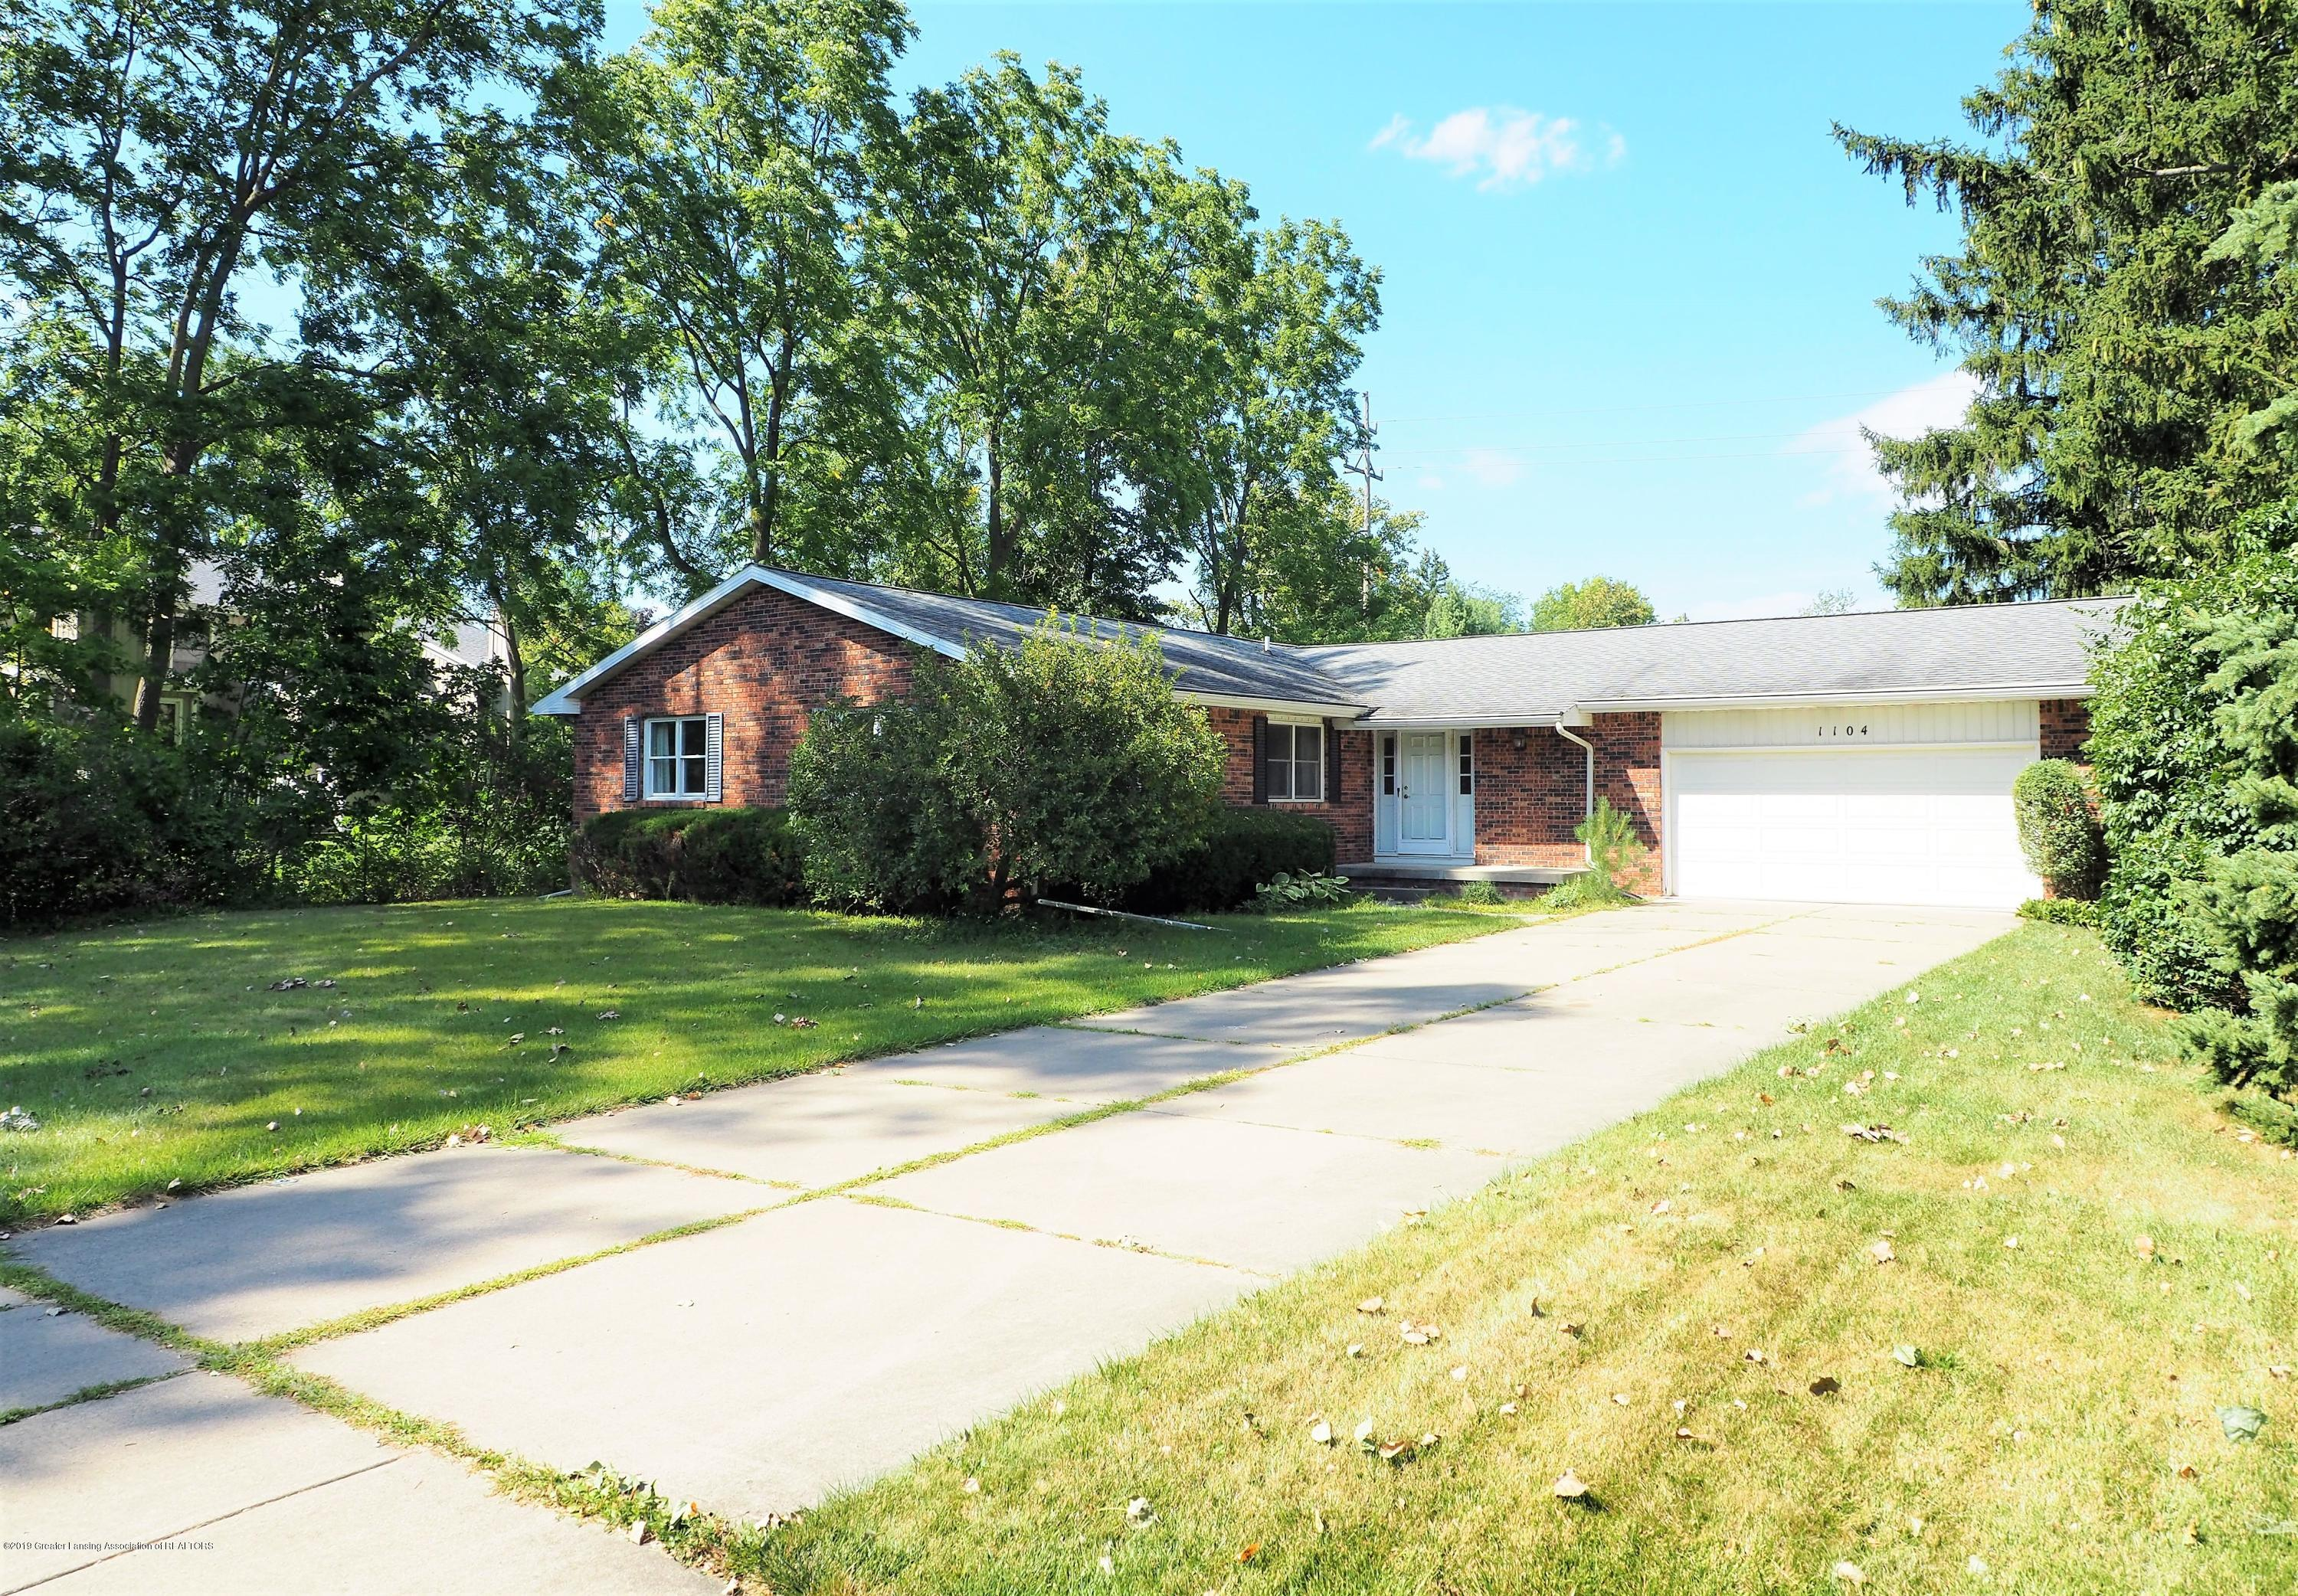 1104 Whitman Dr - P8291336 - 2